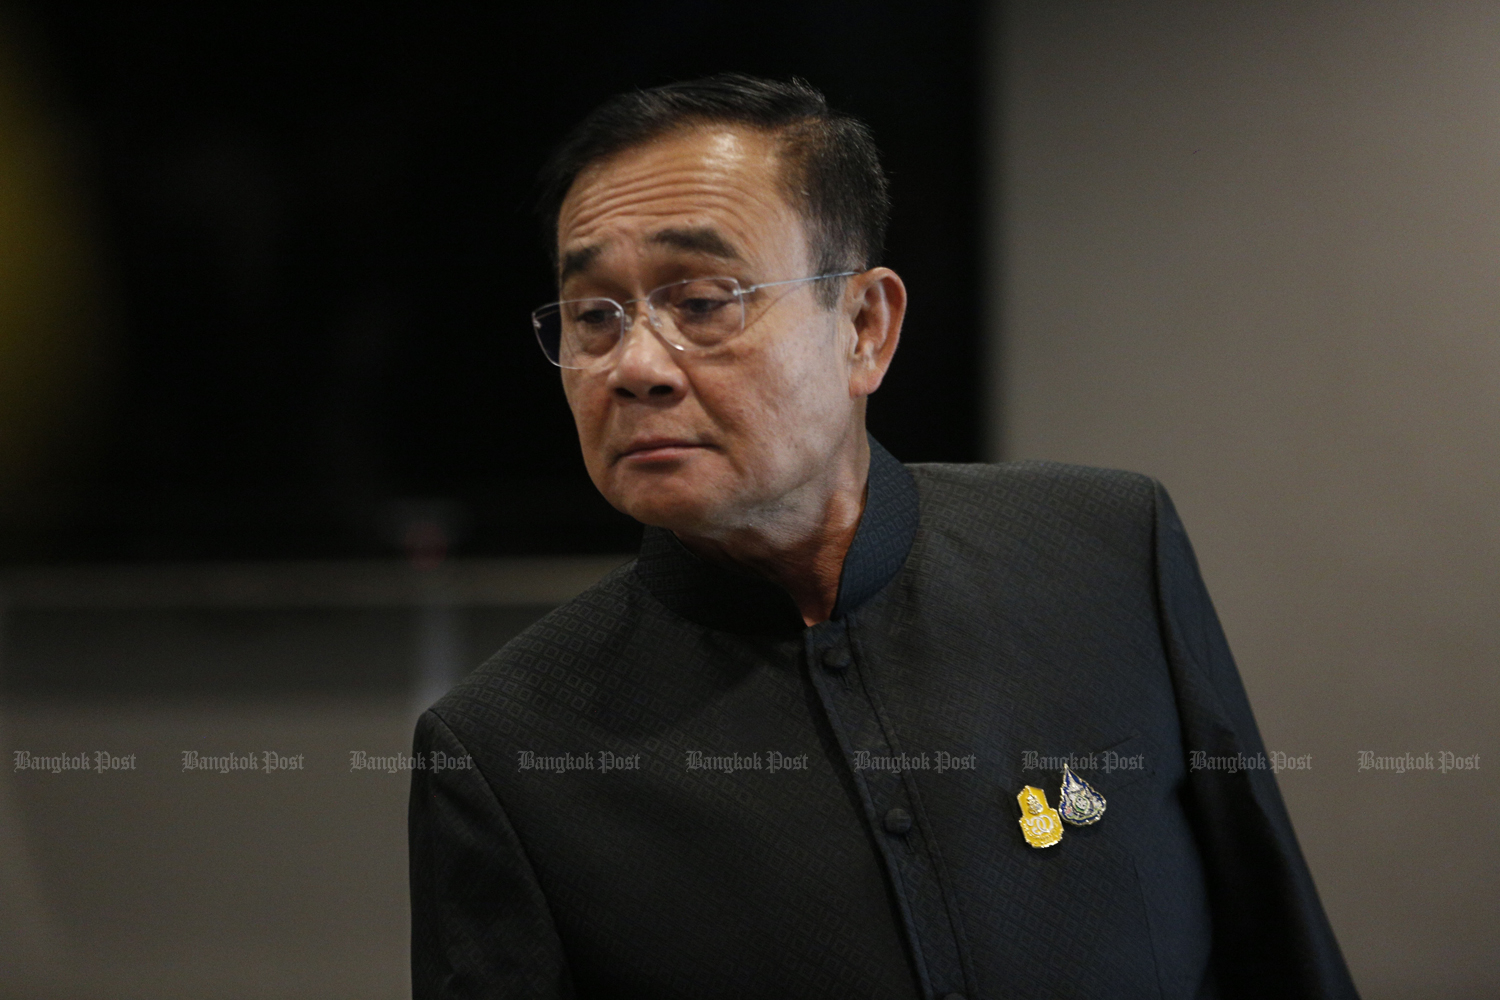 MPs and senators voted for Gen Prayut Chan-o-cha to be the prime minister in their joint meeting on Wednesday. (Photo by Pornprom Satrabhaya)